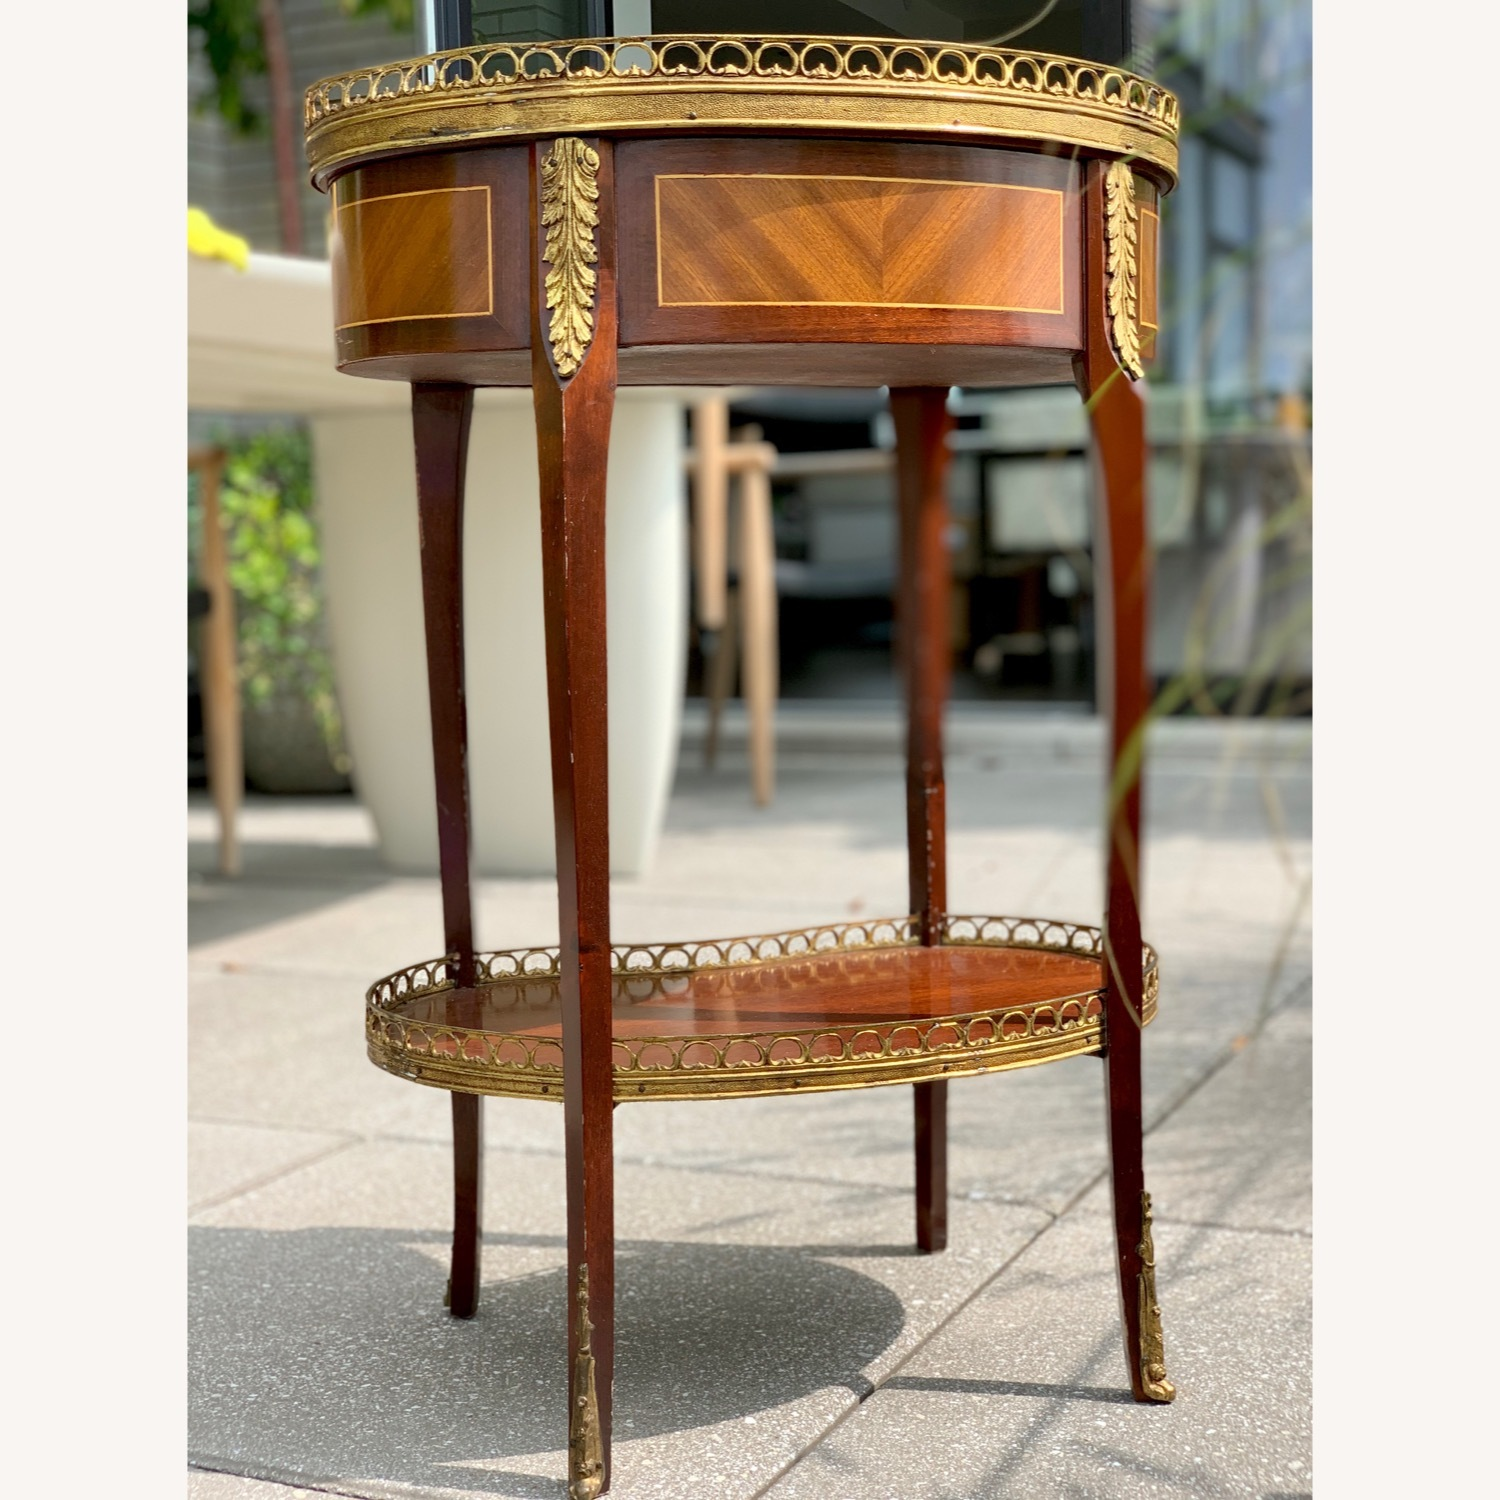 Pair of Kidney Accent Tables 50's Repro - image-4